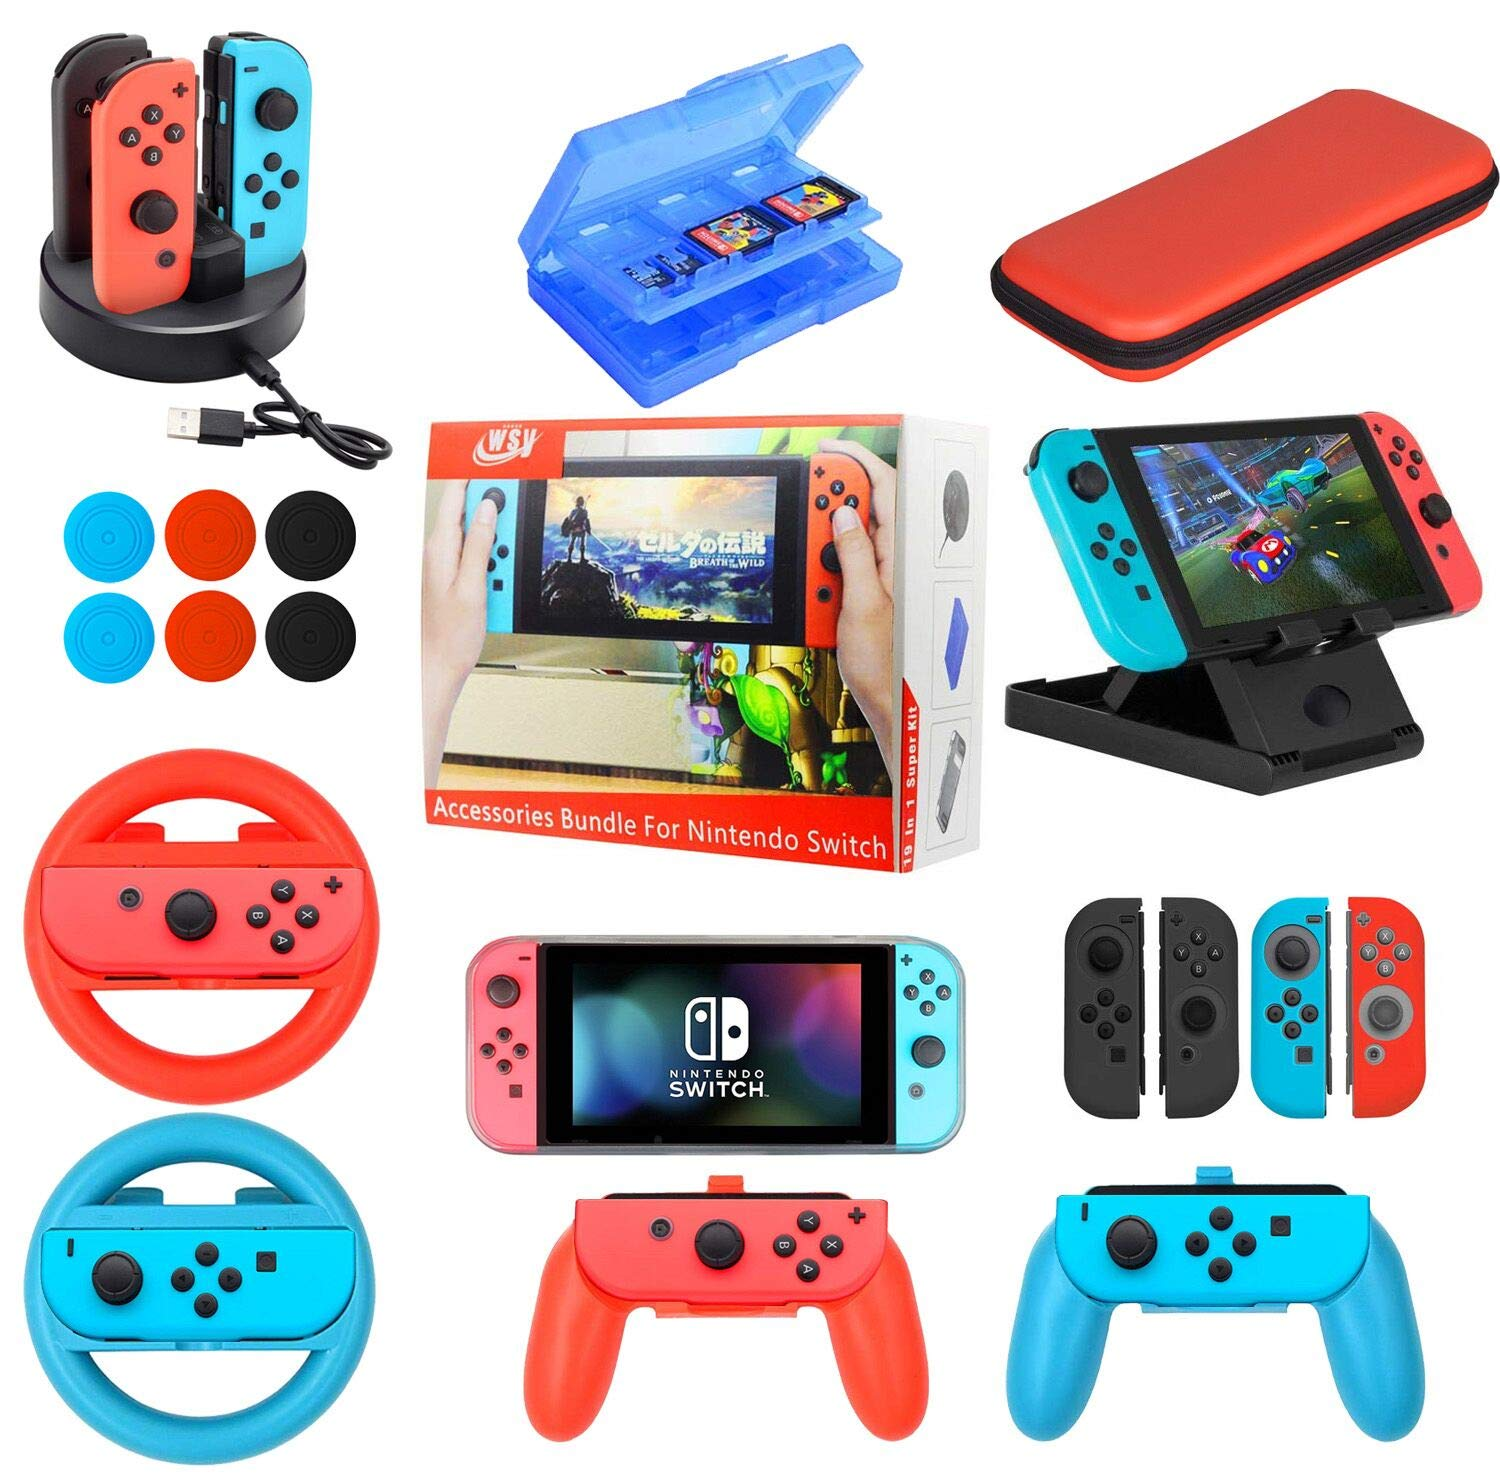 Accessories Bundle for Nintendo Switch 19 in 1 Essential Games Kit for Switch Including Joy Con Covers,Grips,Wheels and Thumbstick Caps, Carry Bag Charging Dock, Game Card Case PlayStand